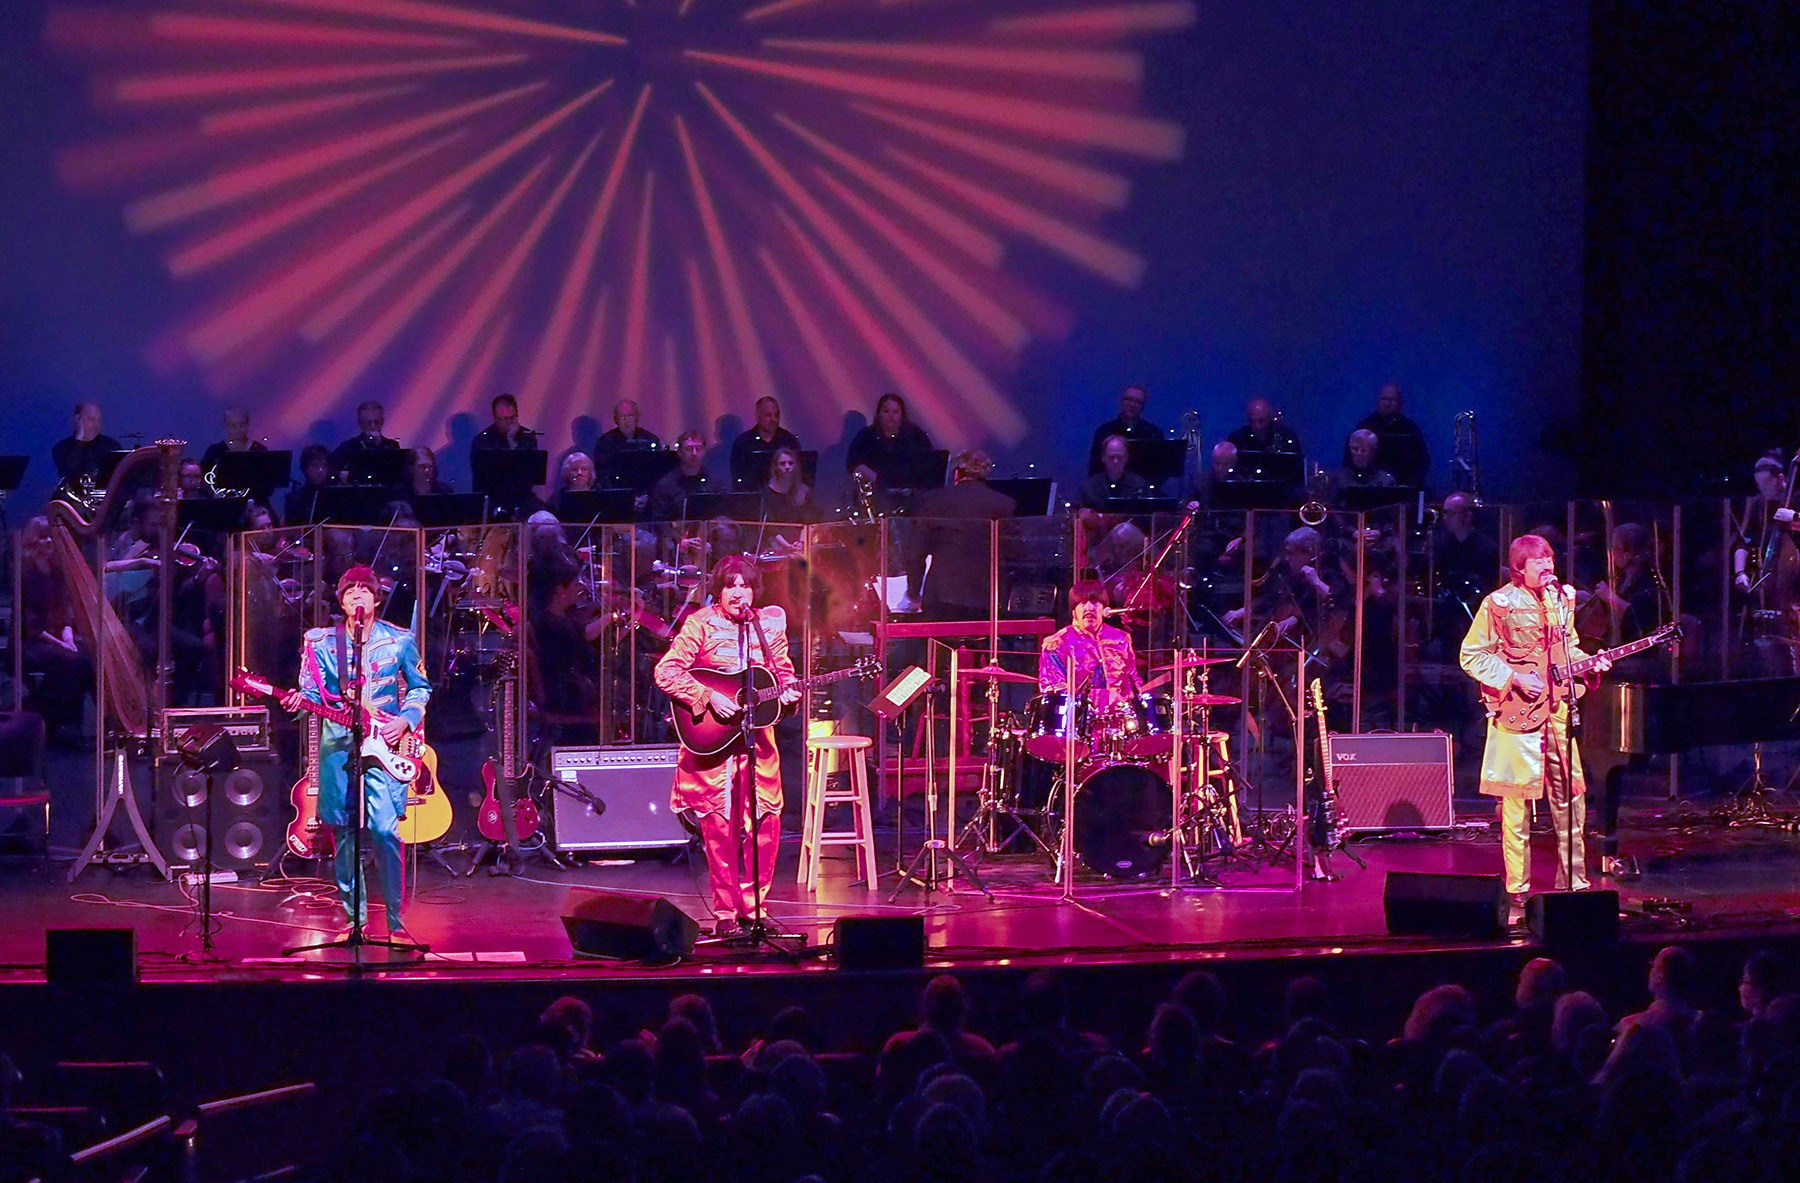 Picnic at the Pops! Classical Mystery Tour: A Tribute to the Beatles - Saturday, September 7, 2019 - 7:30 pmE. & J. Gallo WineryMartin Hermann, conductorGeneral Lawn Tickets: $40 Adults // $12 YouthReserved Lawn Tickets: $62 Adults // $20 Youth